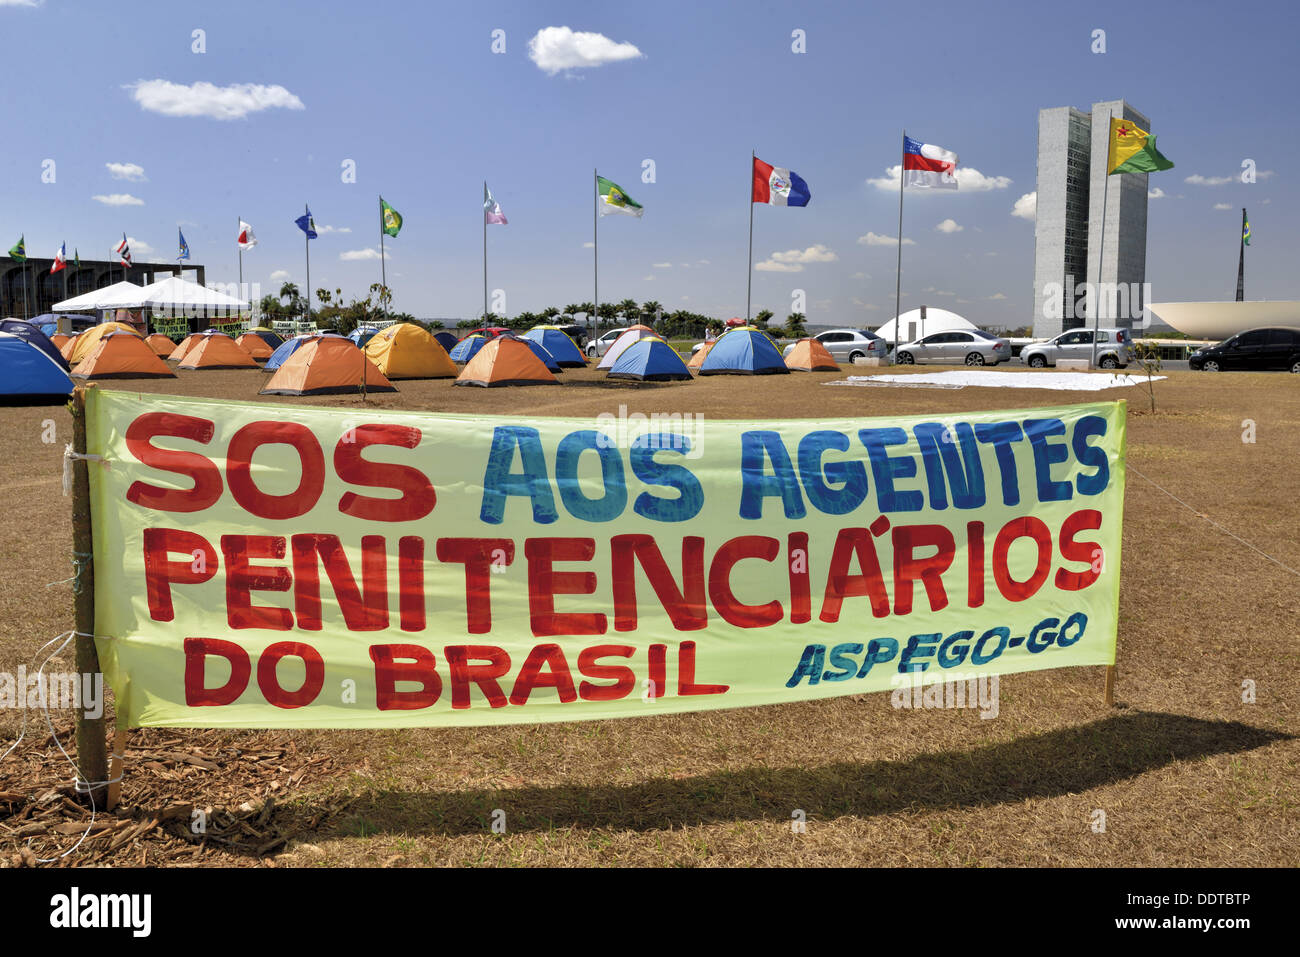 Brazil, Brasilia, manifestation, demonstration, political manifestation, Acampamento Uniao, society, protests, people Stock Photo